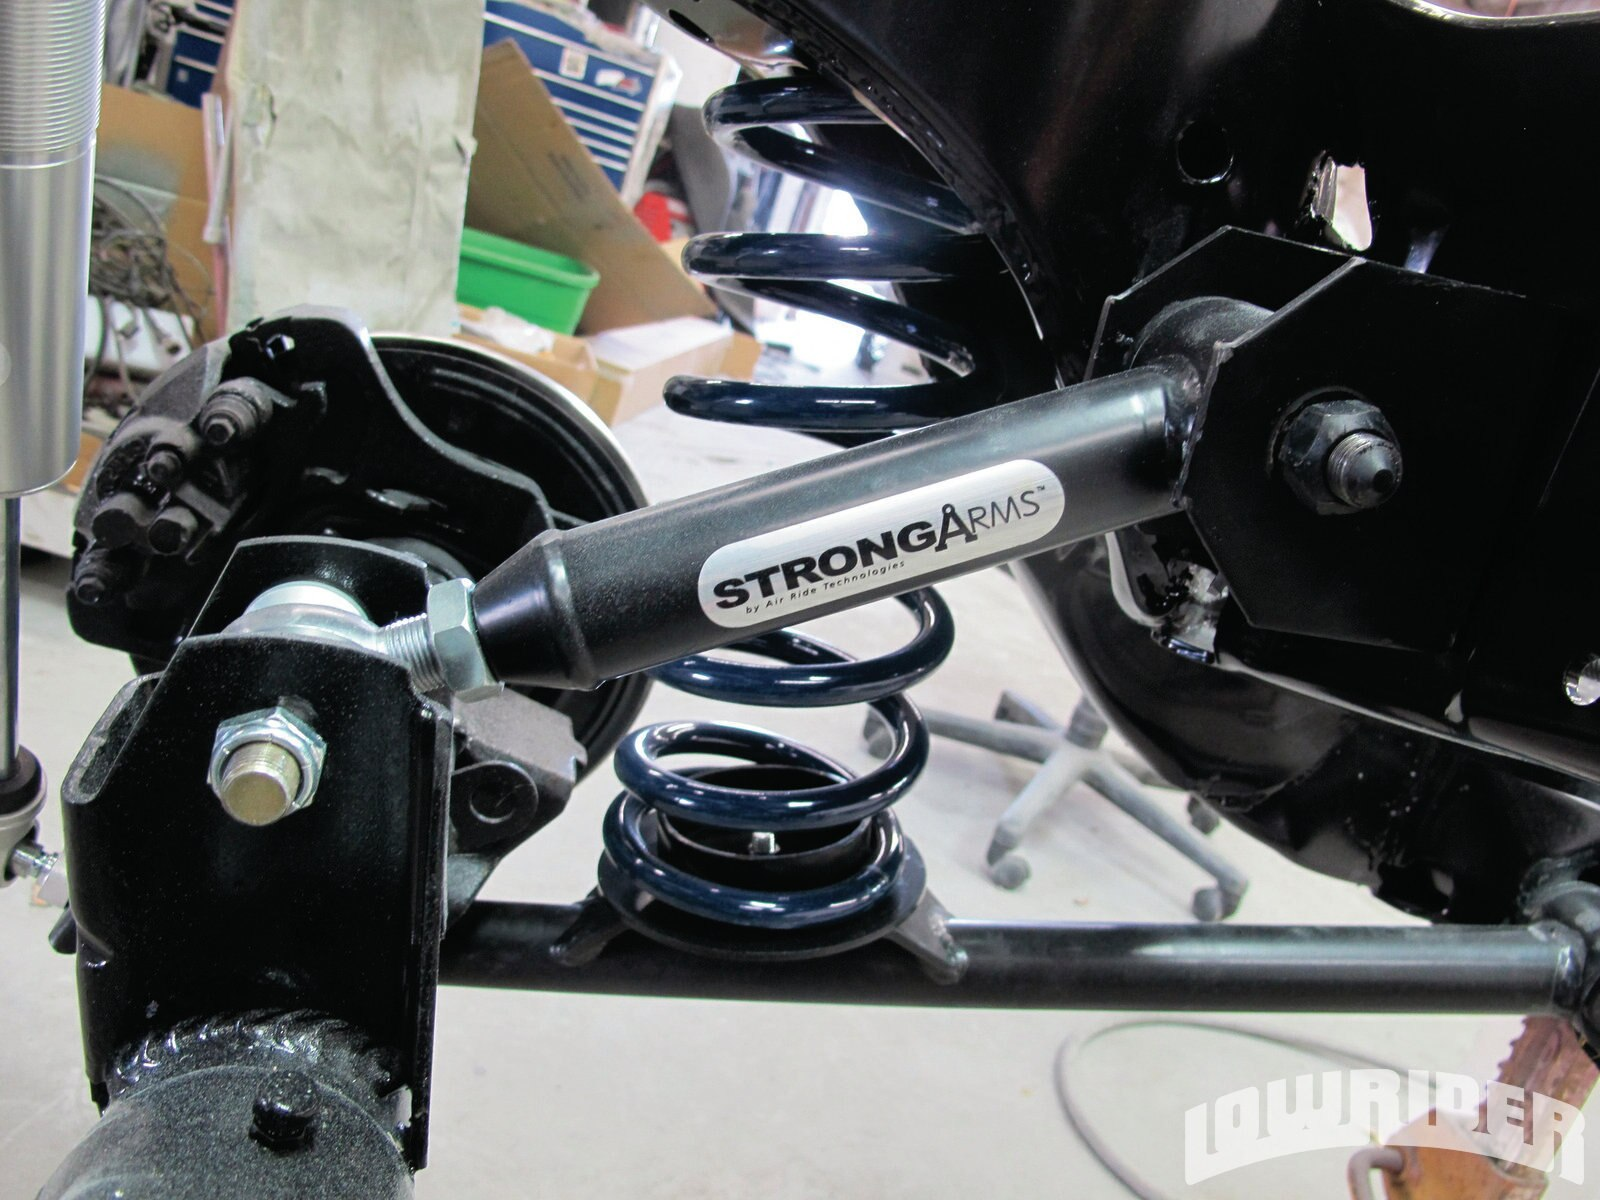 <strong>6</strong>. When ordering your kit, you need to know if it is a 2-arm kit or if it is a single. Since this was a Super Sport, it came with an additional arm for better traction.